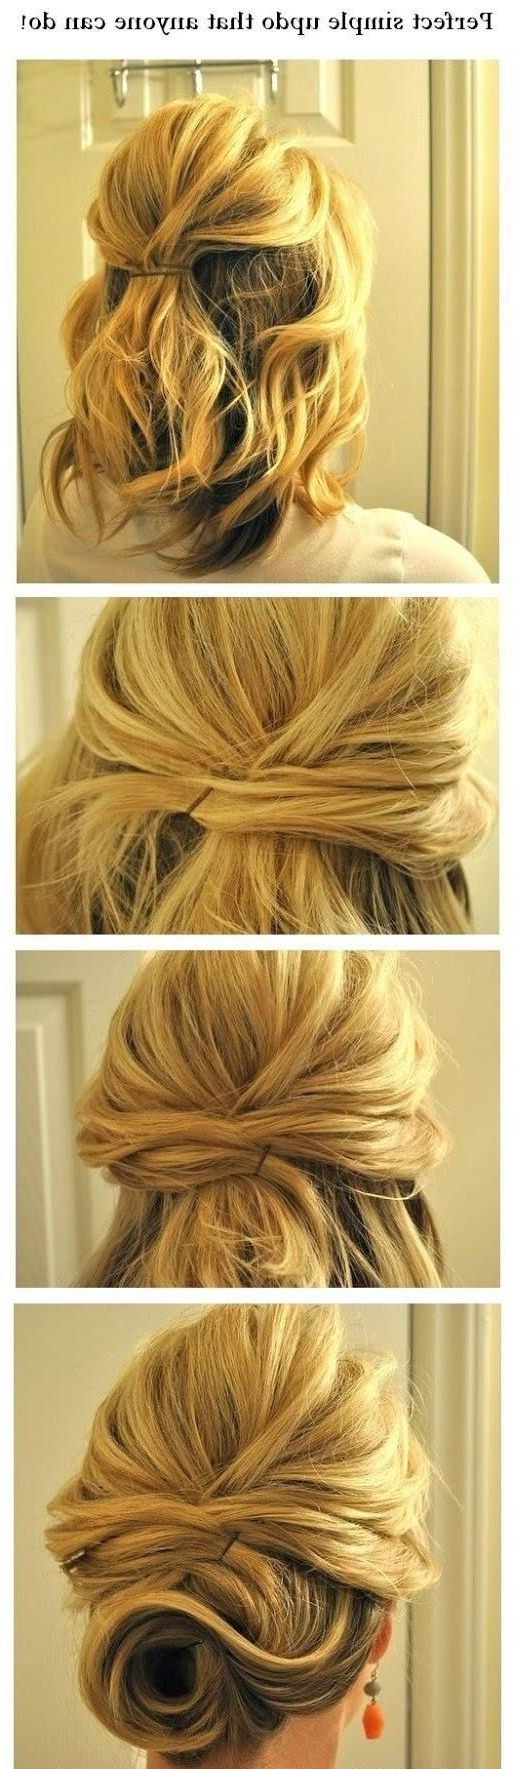 12 Trendy Low Bun Updo Hairstyles Tutorials: Easy Cute – Popular Regarding Famous Twisted Low Bun Hairstyles For Wedding (View 1 of 20)